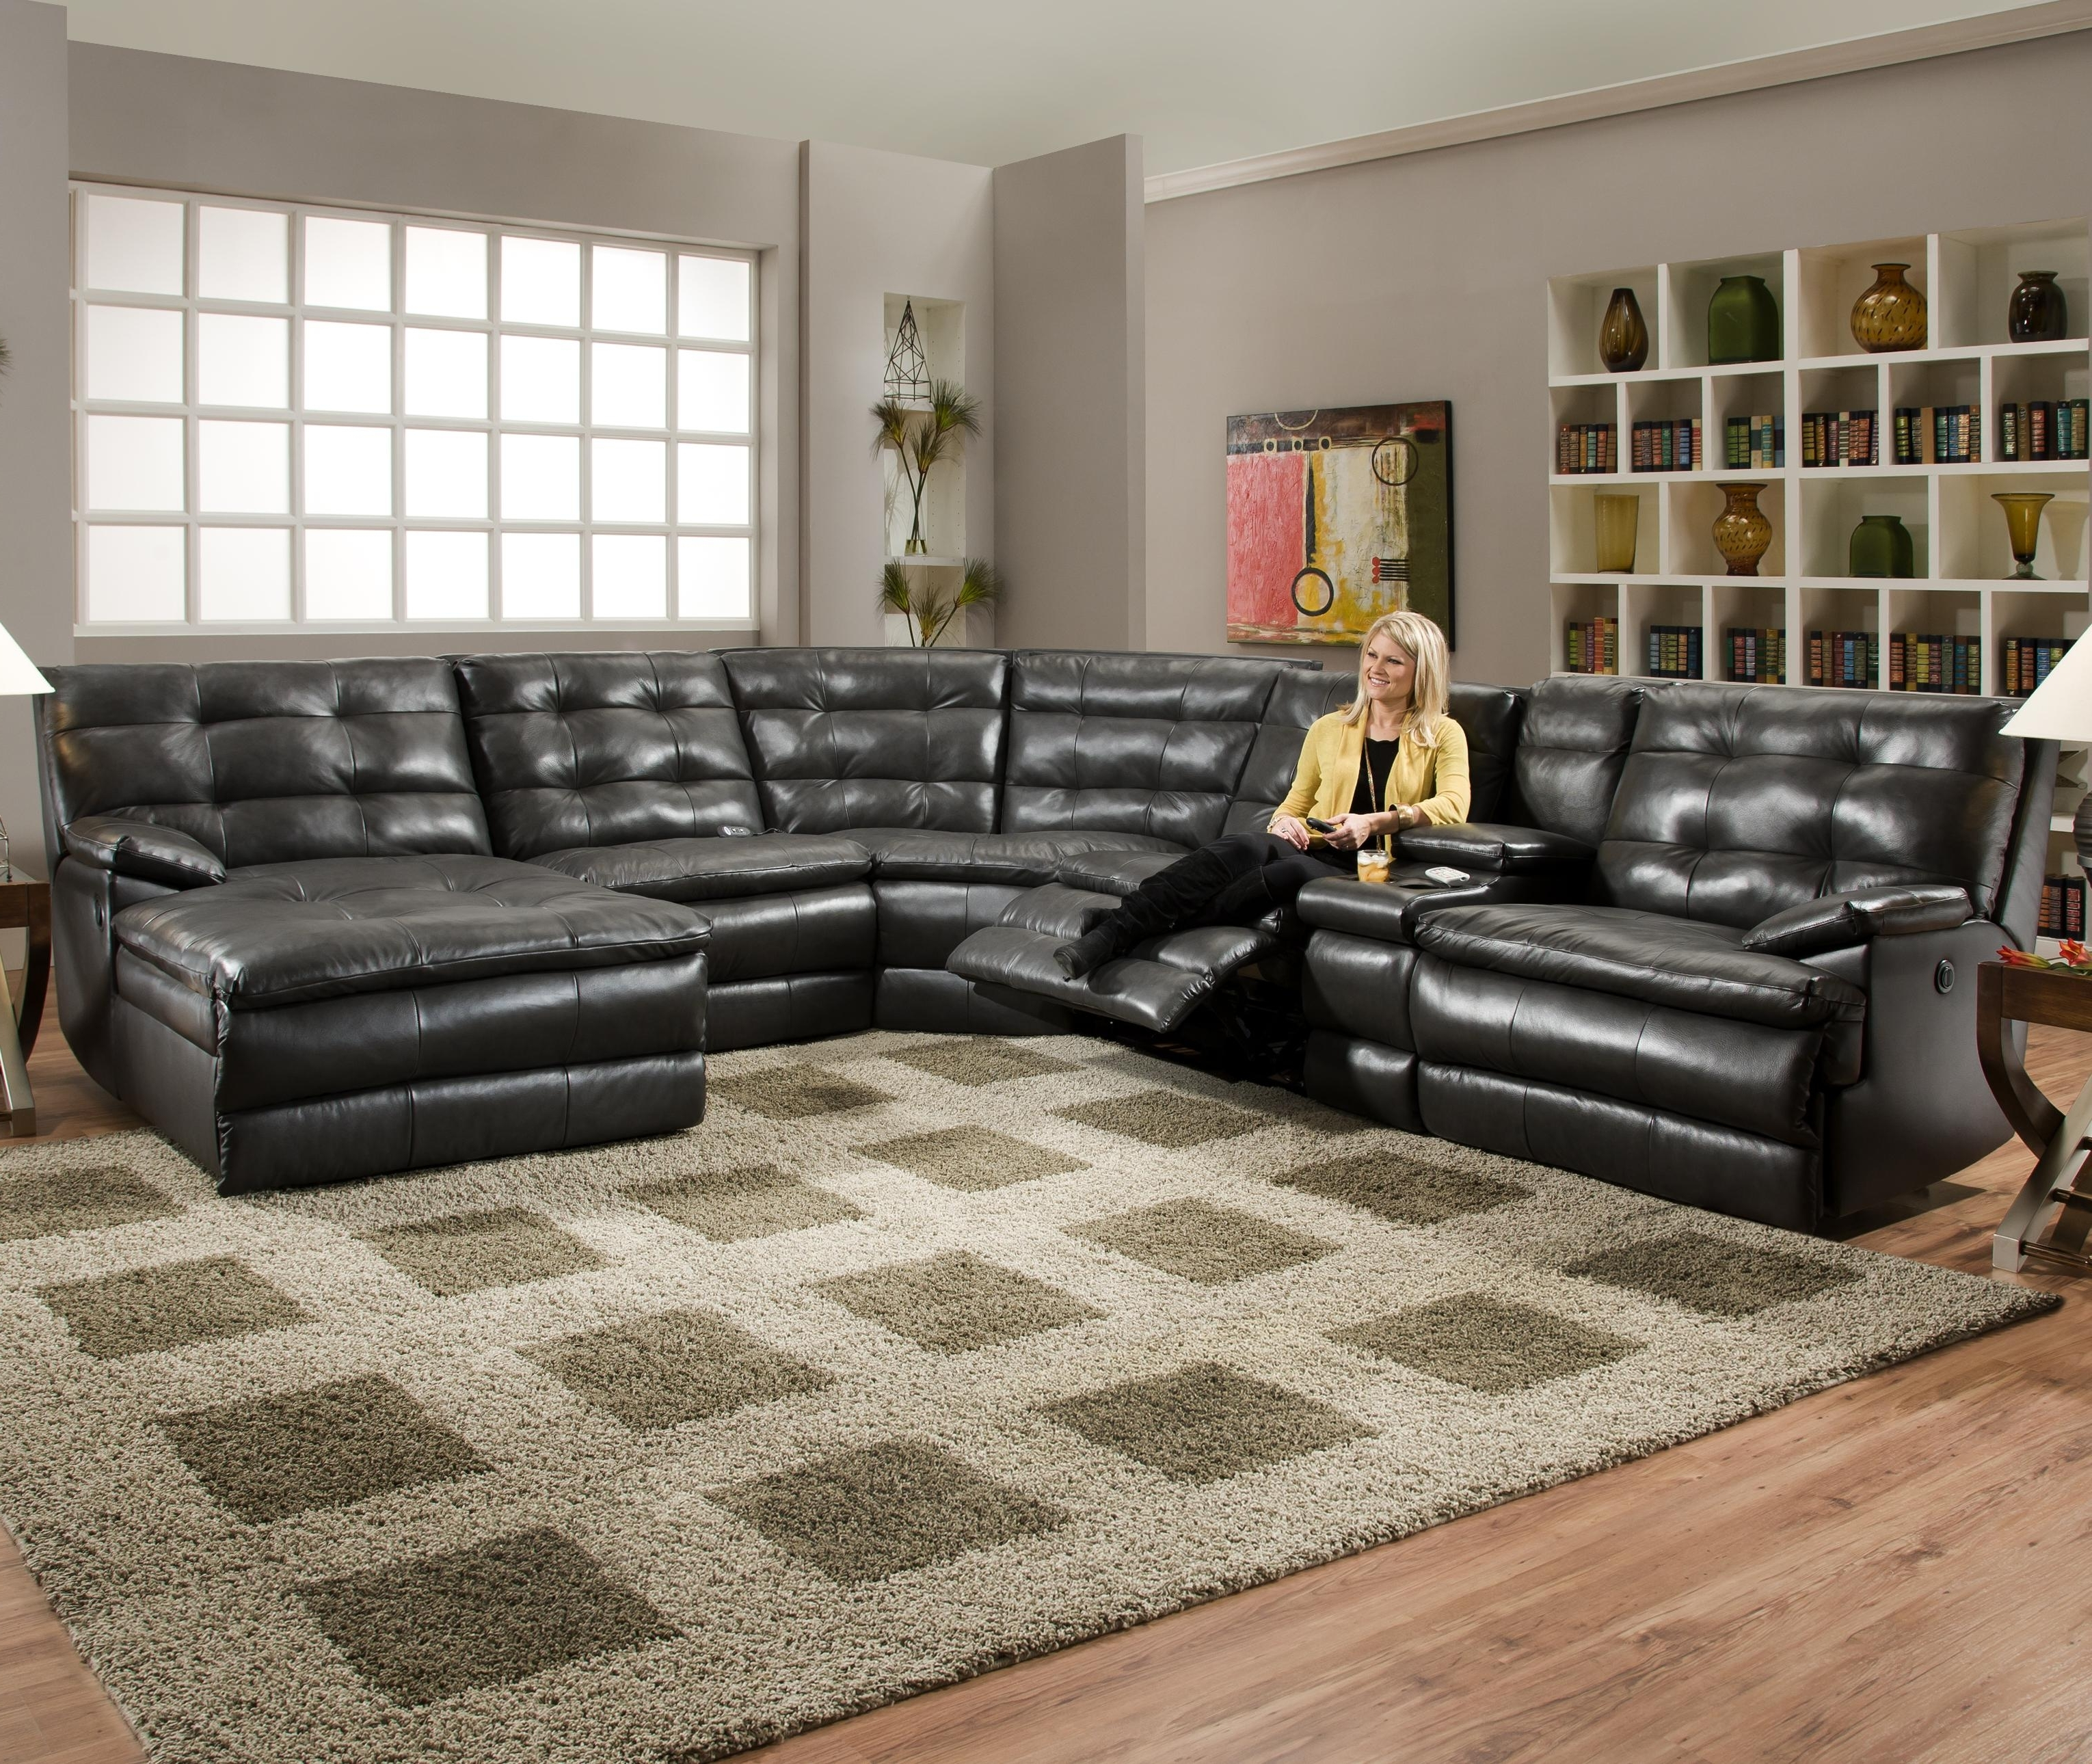 Well Known Luxurious Tufted Leather Sectional Sofa In Classy Black Color With Inside Sectional Sofas In Stock (View 8 of 15)